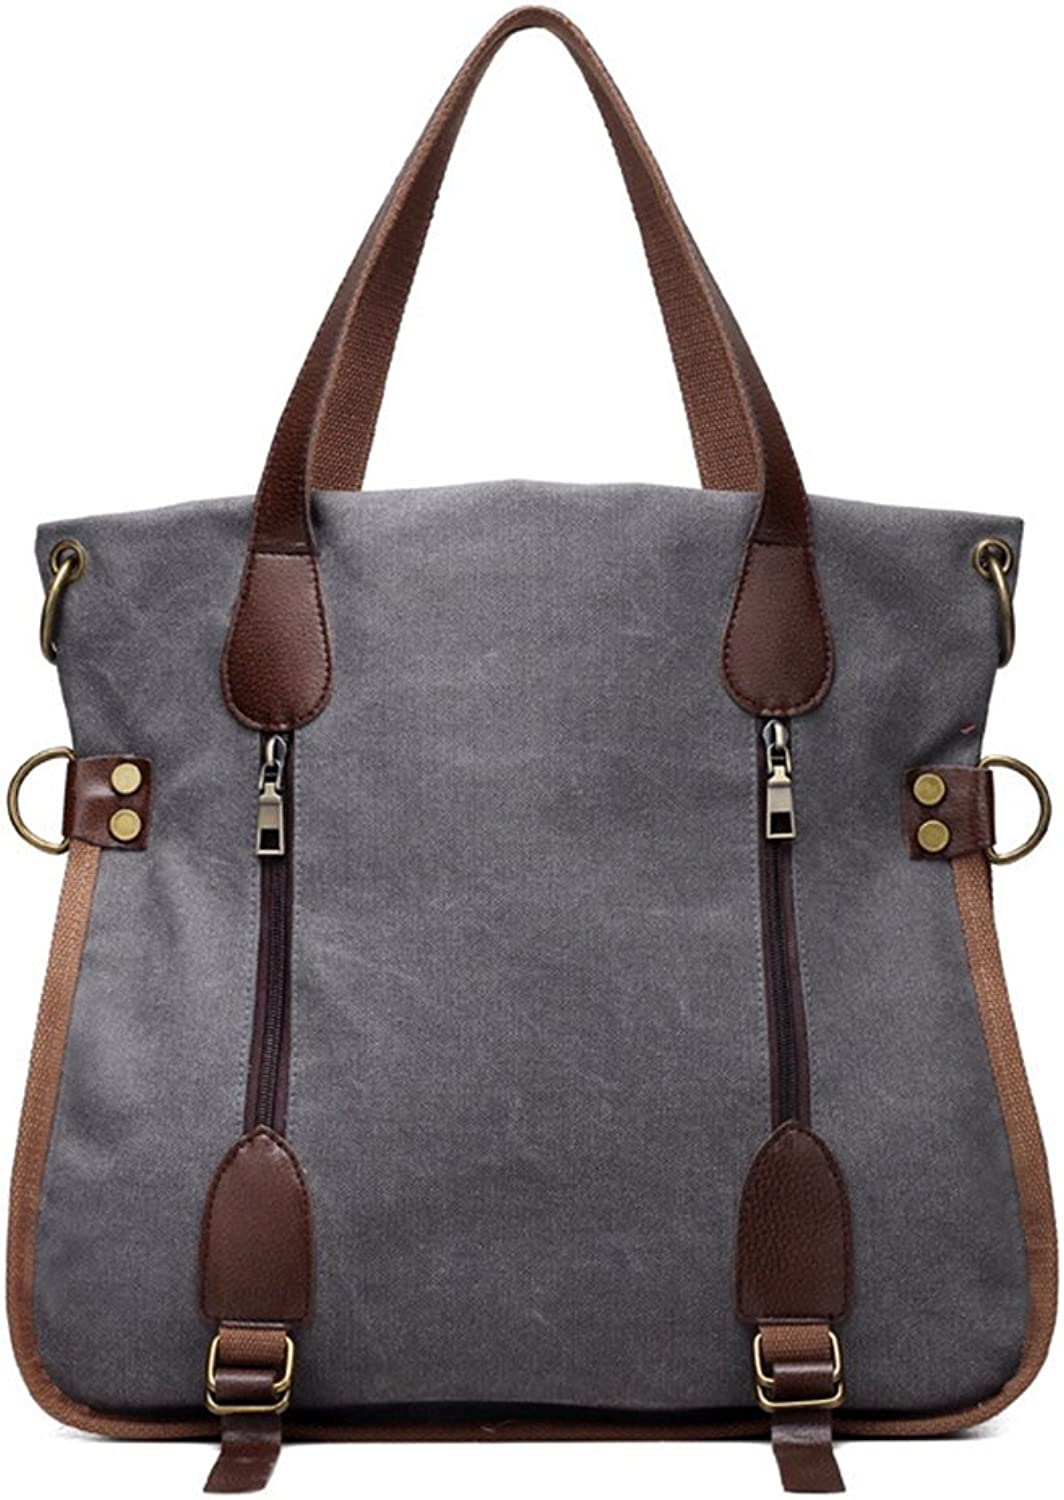 Women's Canvas Bag Casual Retro Shoulder Bag Large-Capacity Handbag Messenger Bag Shopping Bag.